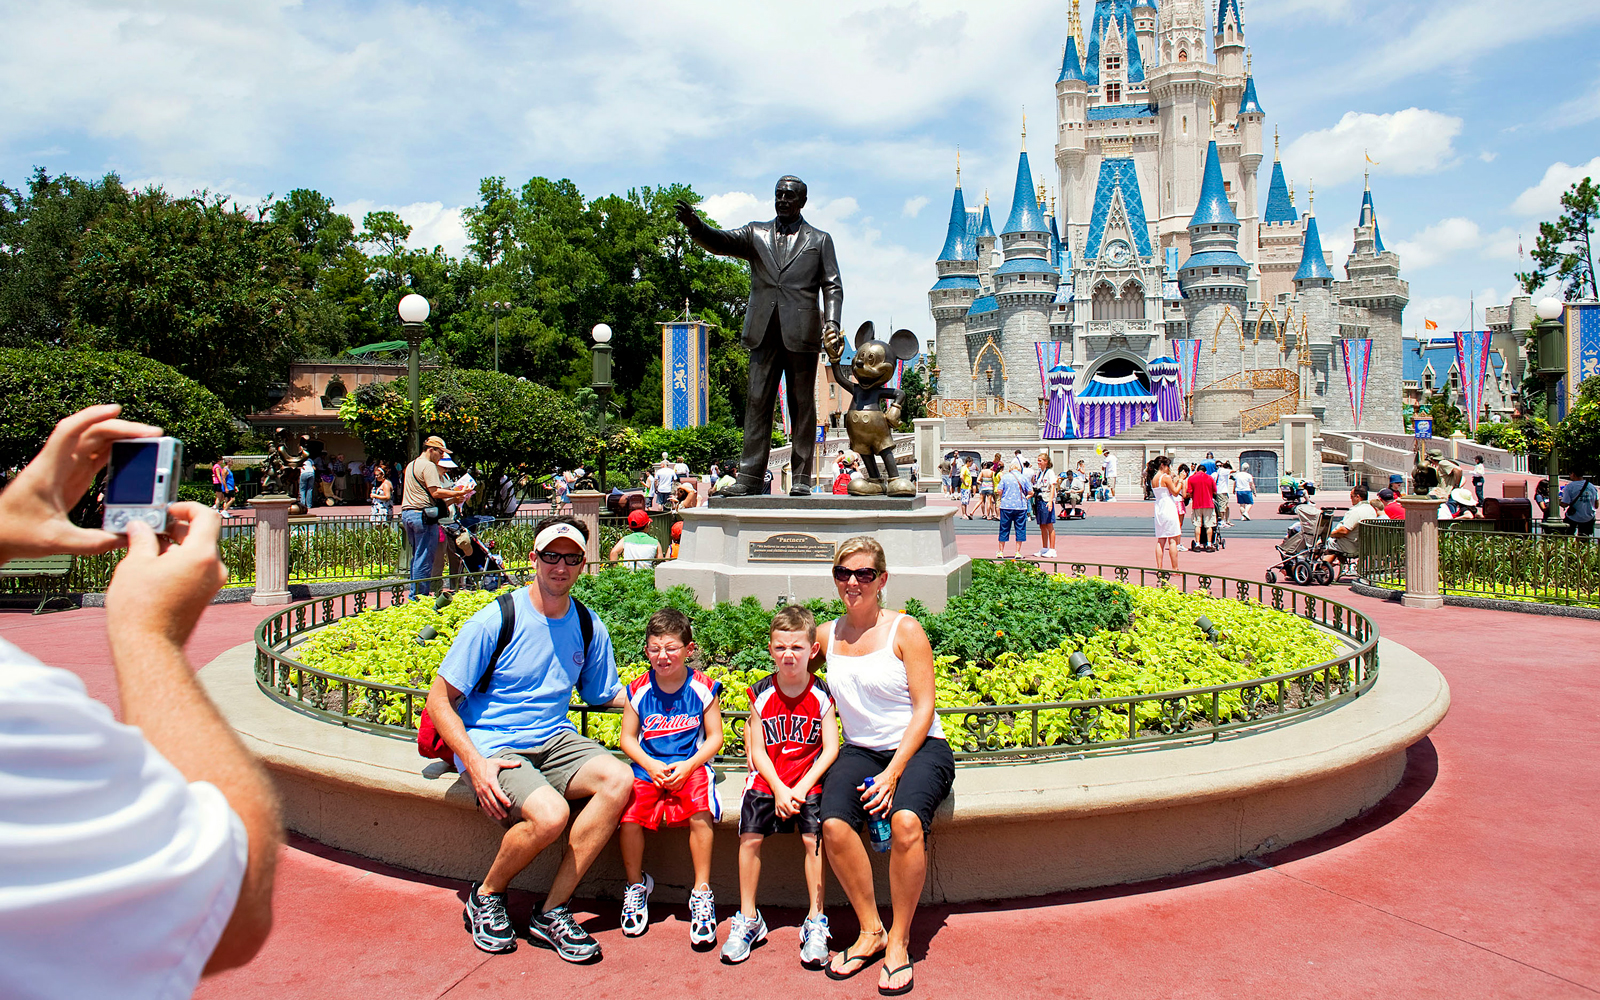 Disney Just Ruined the Most Popular Instagram Backdrop at Magic Kingdom